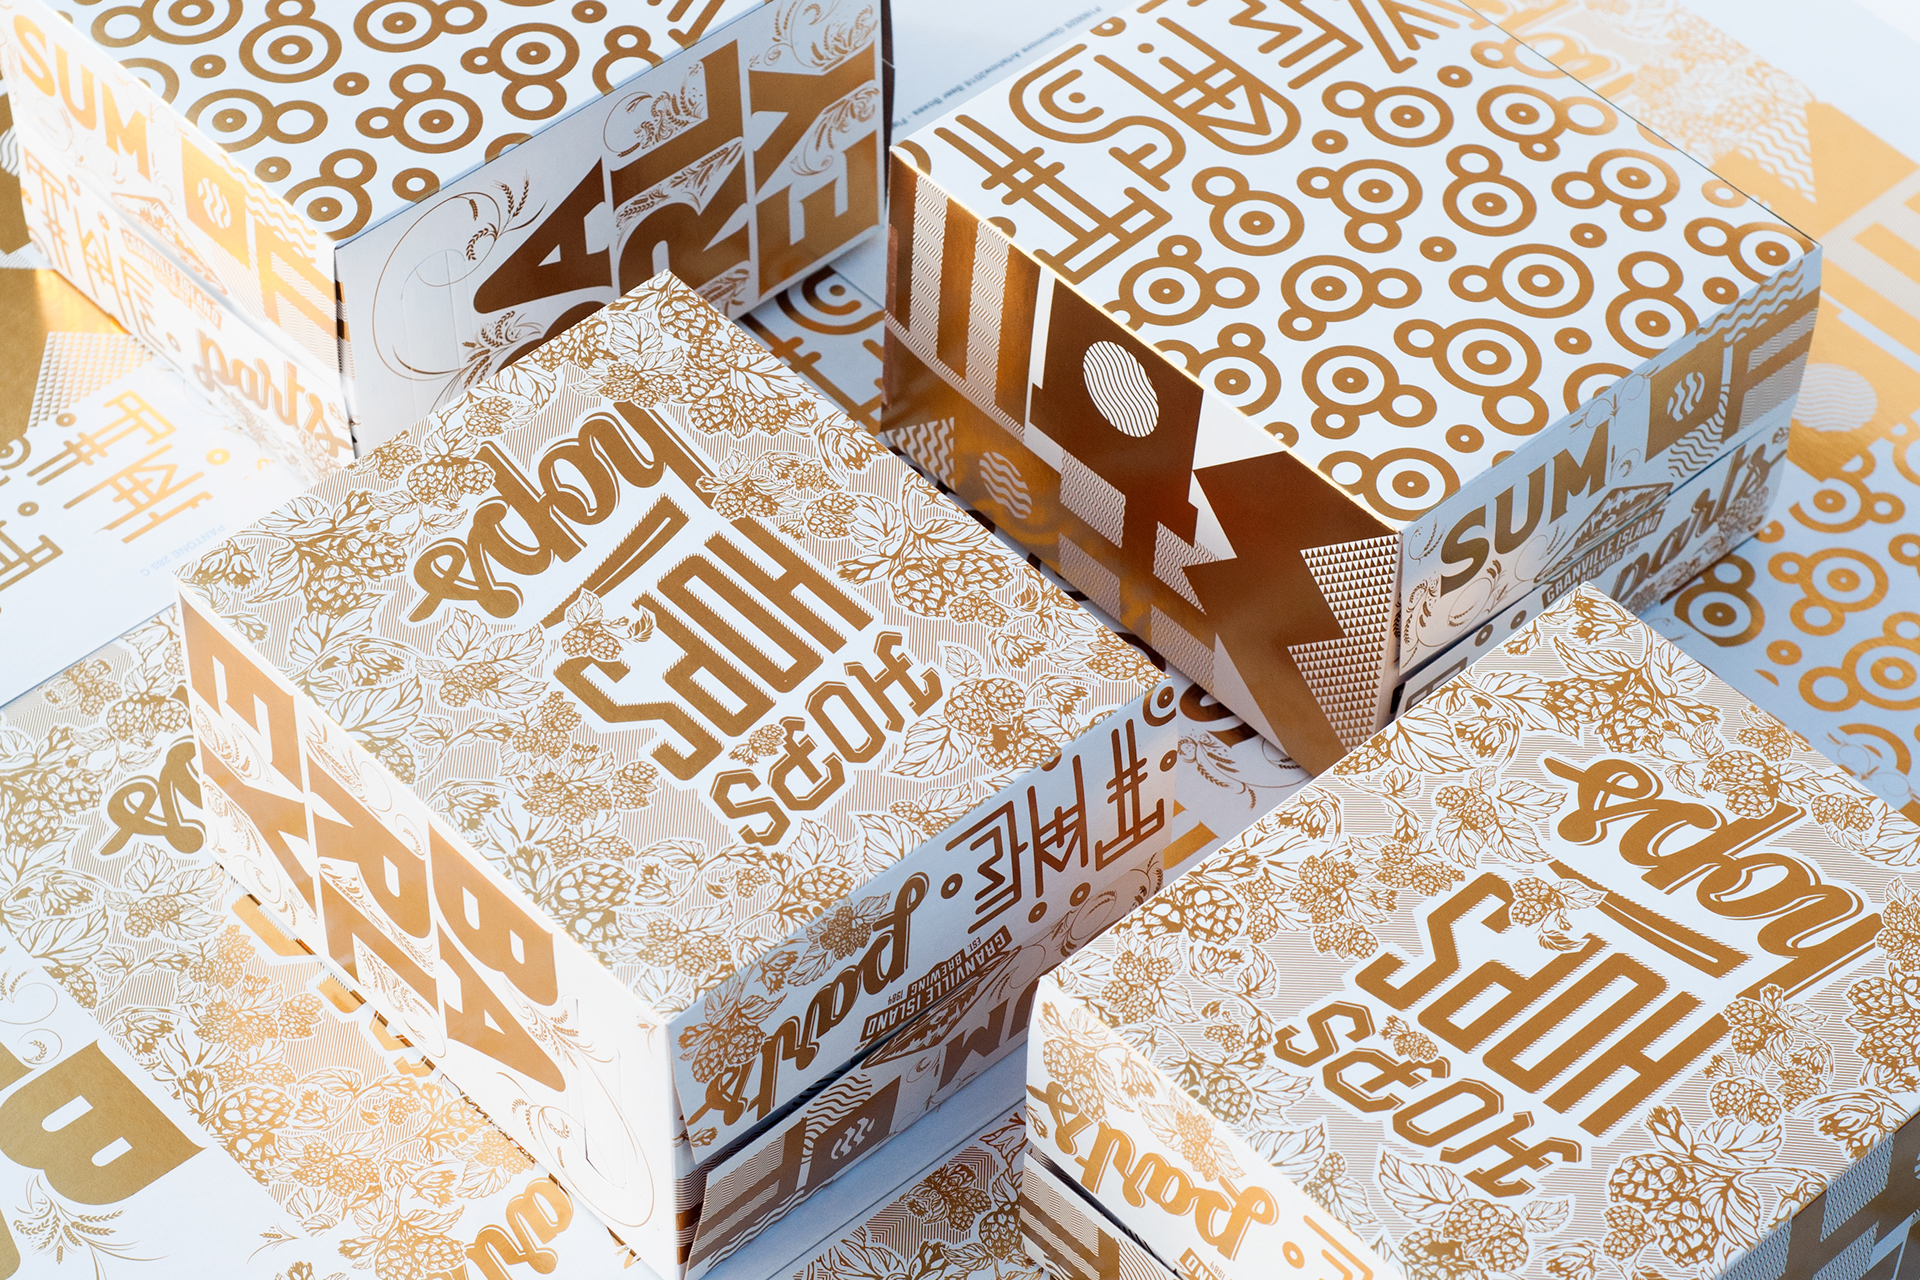 Graphic Design & Typography Works by Sami Christianson